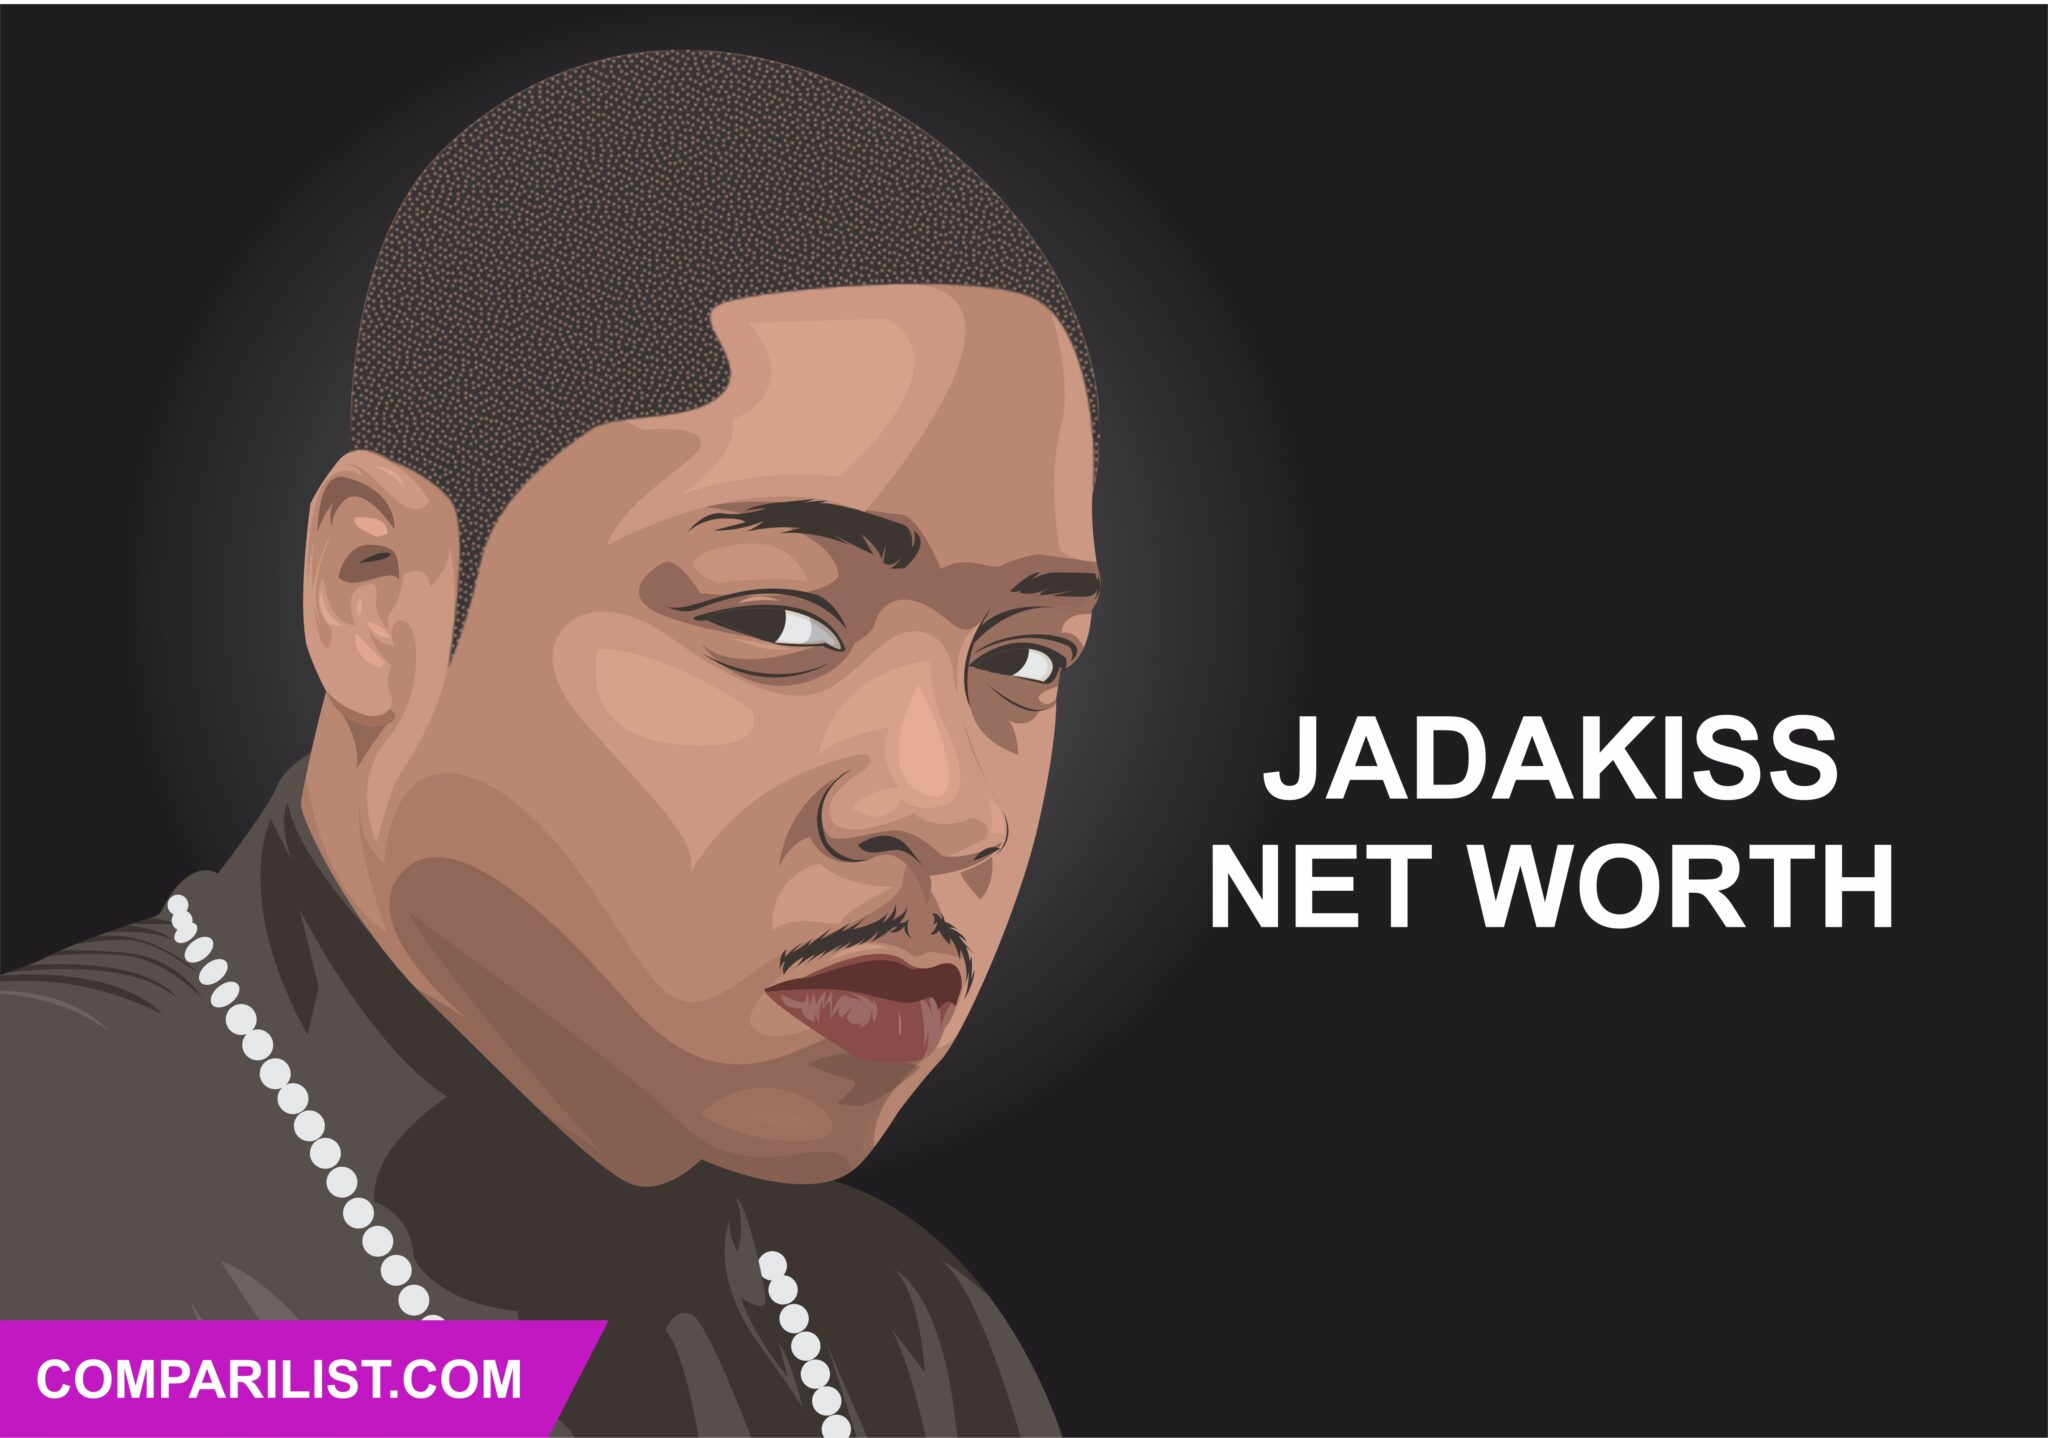 Jadakiss Net Worth 2019 | Sources of Income, Salary and More